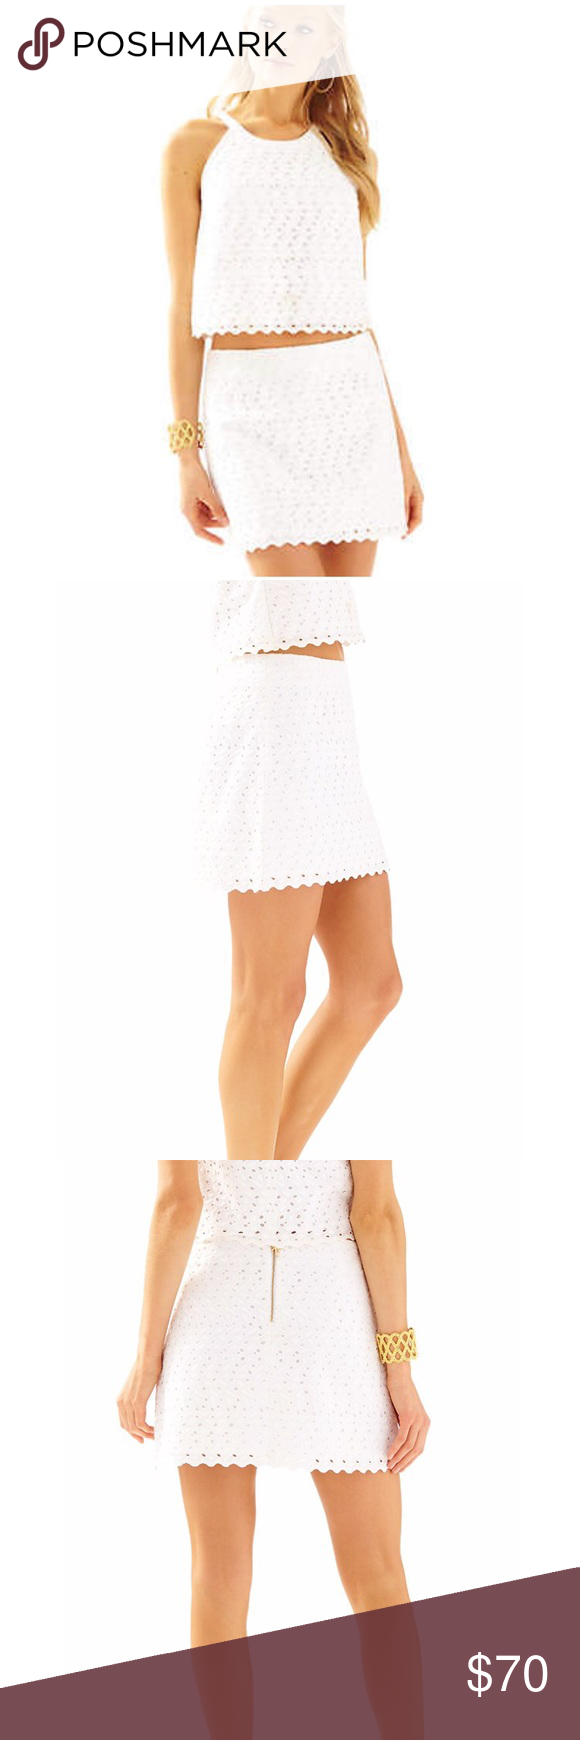 Lilly Pulitzer White Lace Eyelet Two Piece Set White Lace Lilly Pulitzer White Eyelet [ 1740 x 580 Pixel ]